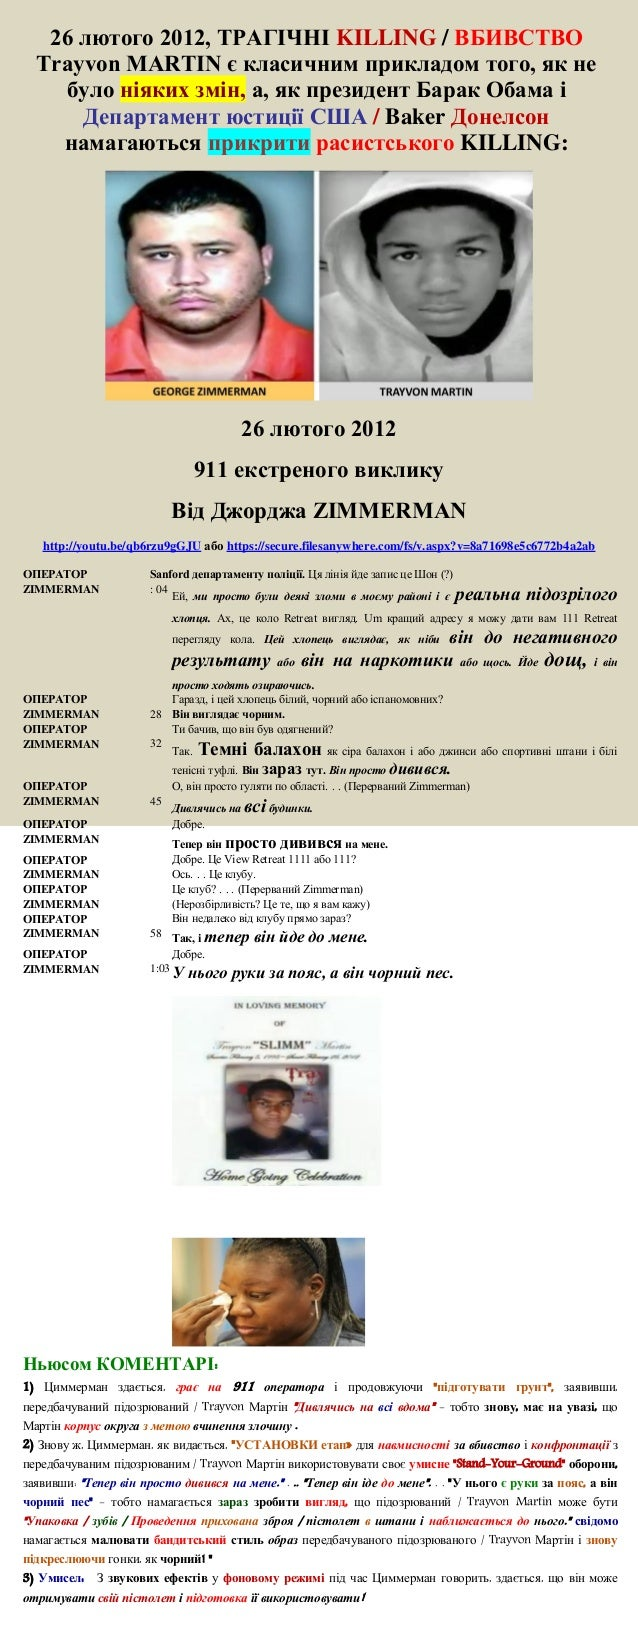 02 26-2012 GEORGE ZIMMERMAN EMERGENCY 911 CALL (ukrainian)